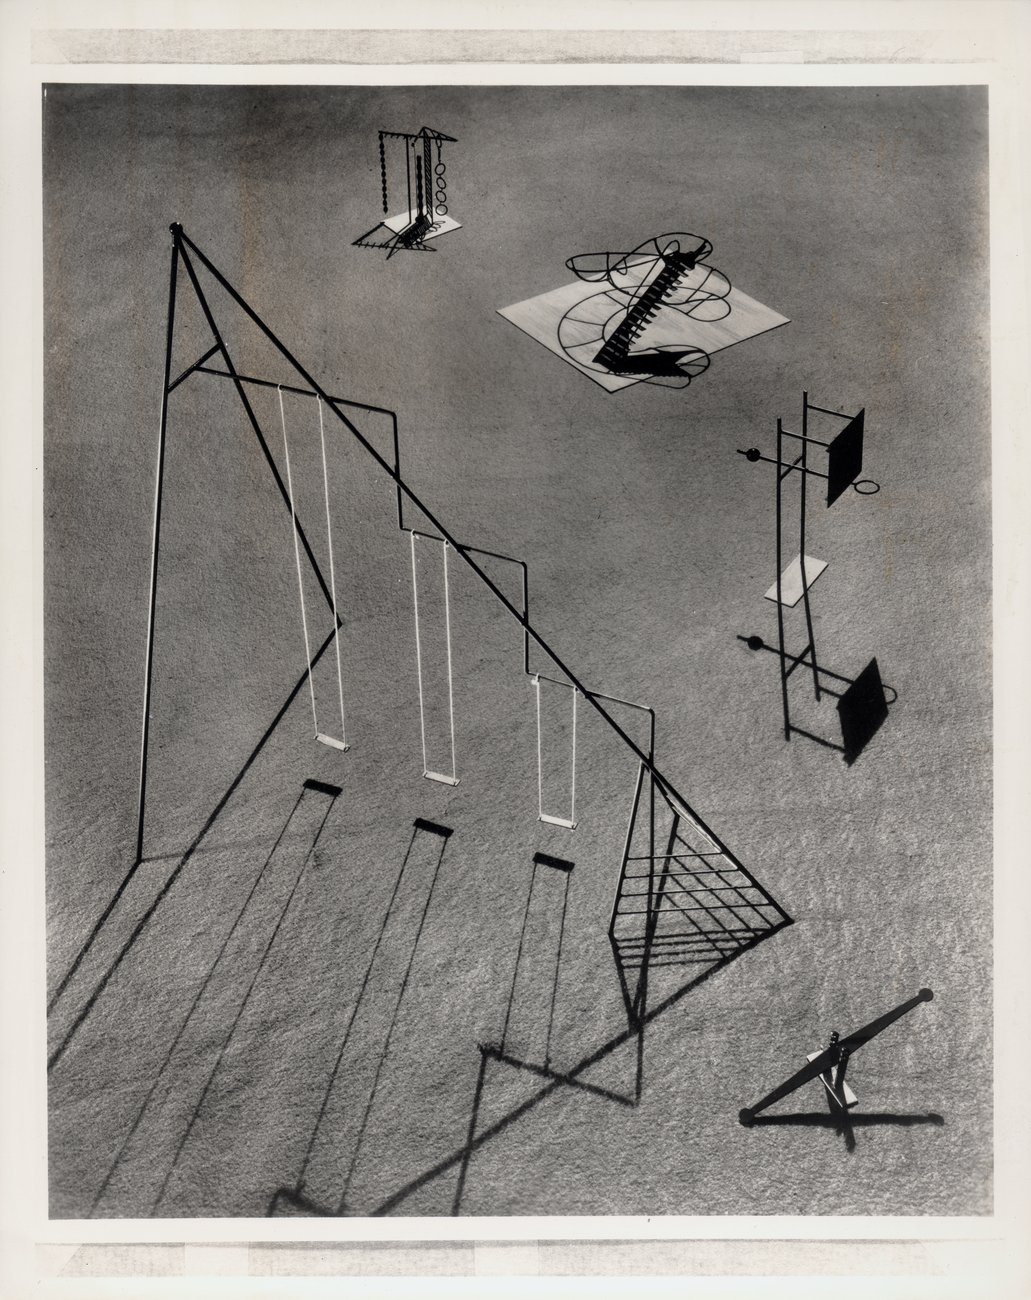 ​Fay S. Lincoln, Image of Noguchi's playground equipment for Ala Moana Park, Hawaii